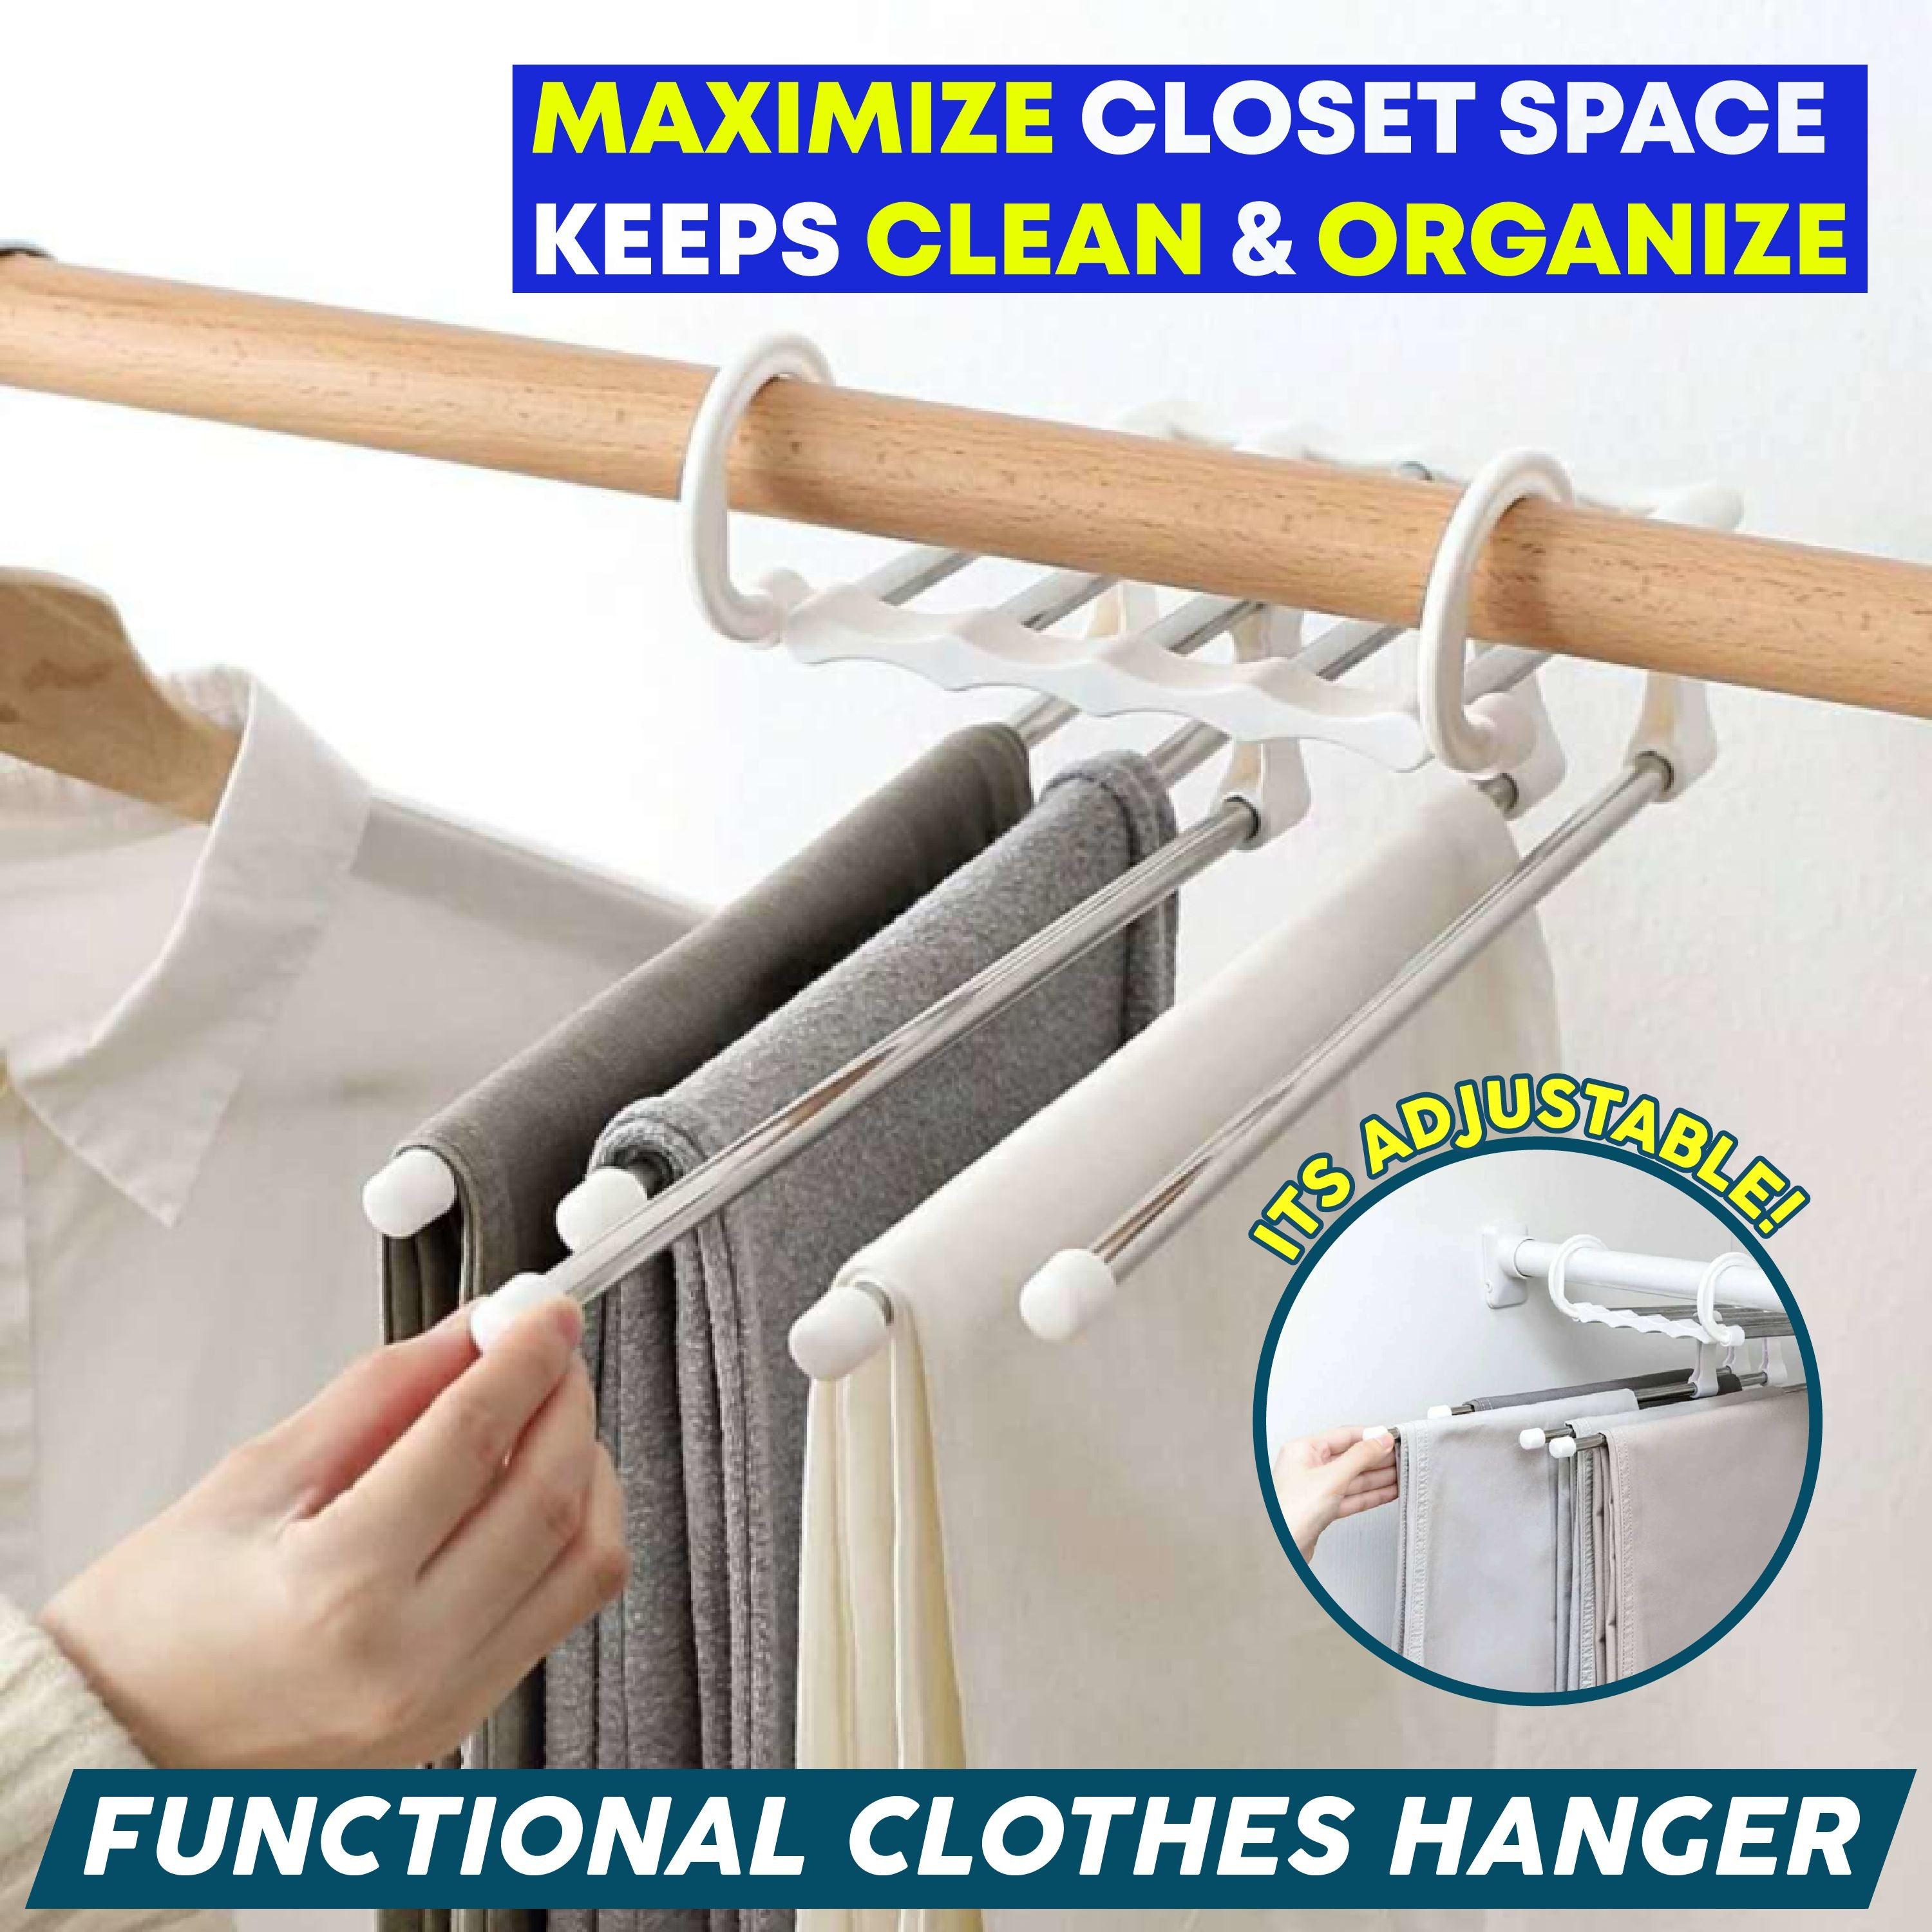 Functional Clothes Hanger 88mallonline White